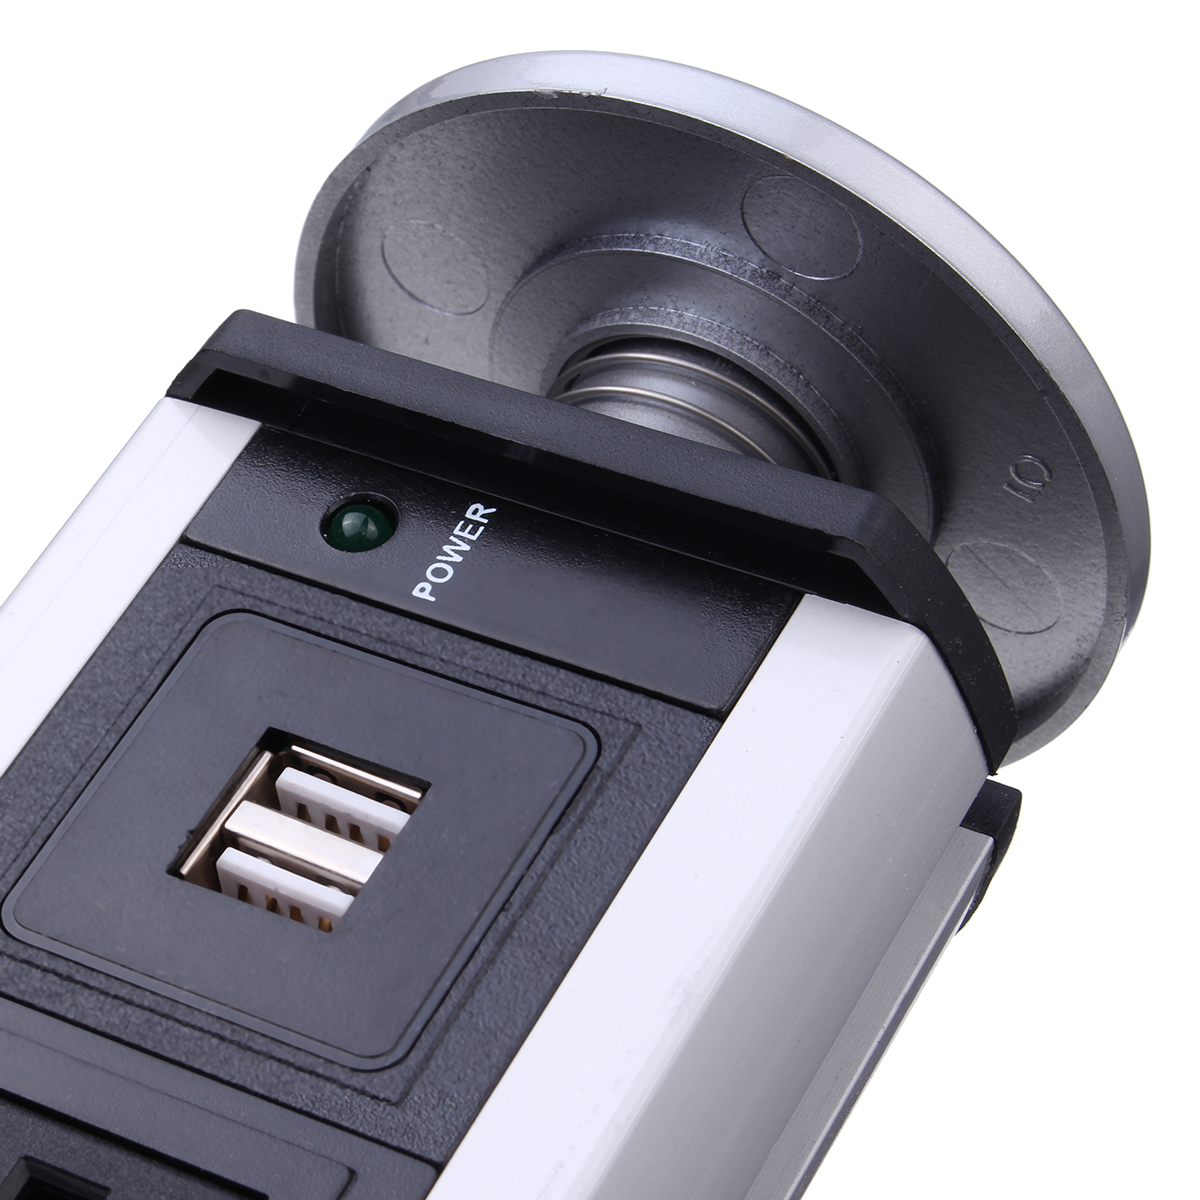 USA Plug 3/4/5/6 Power 2 charge USB Hidden Kitchen Table Pop Up Electrical Socket